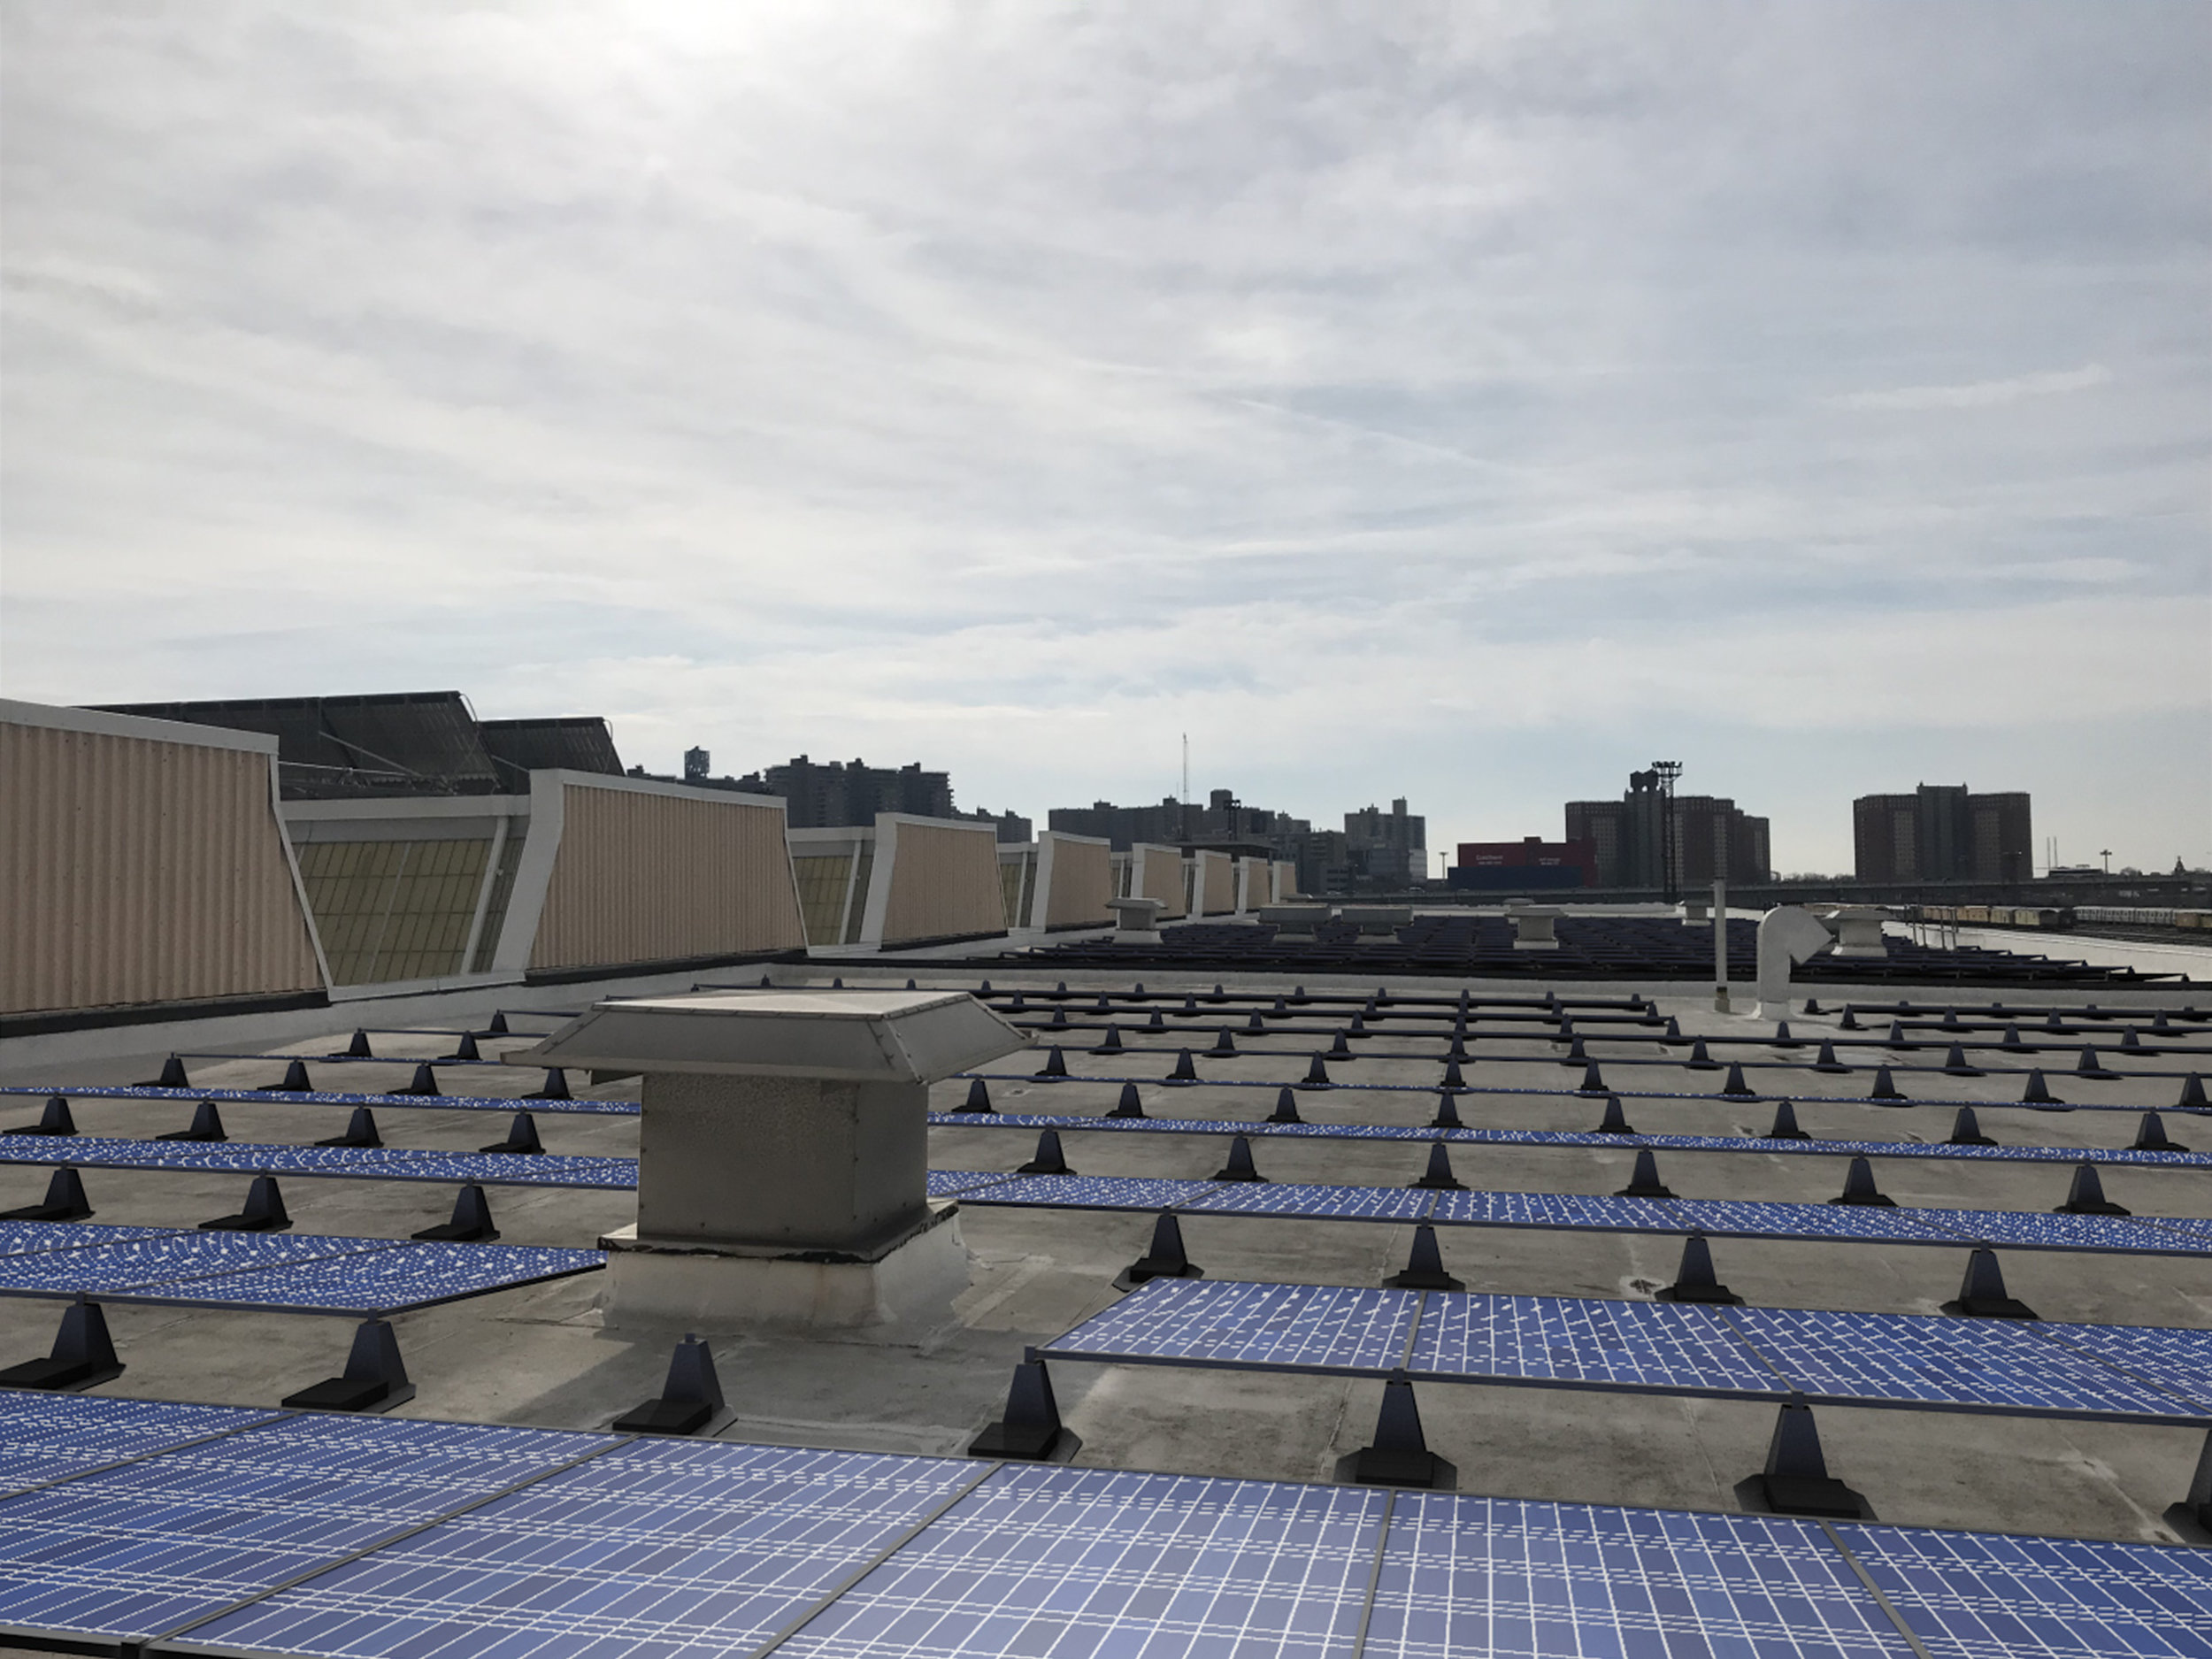 The MTA would place solar panels on the roofs of certain MTA structures, such as the Coney Island Maintenance Facility, under a new proposal. Rendering courtesy of the MTA.